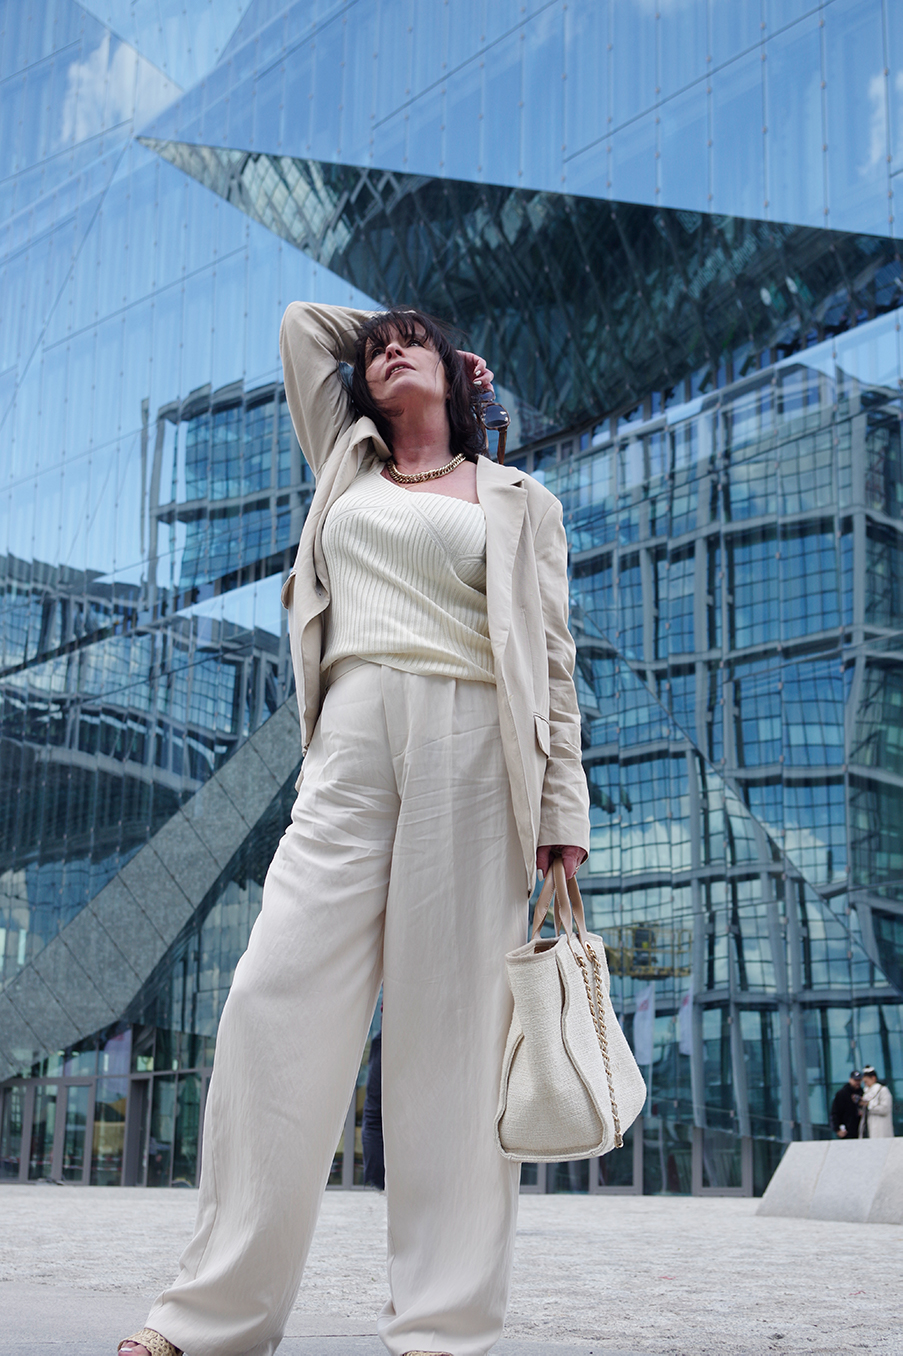 Just-take-a-look Berlin Outfit Creme Corona Wochen 2